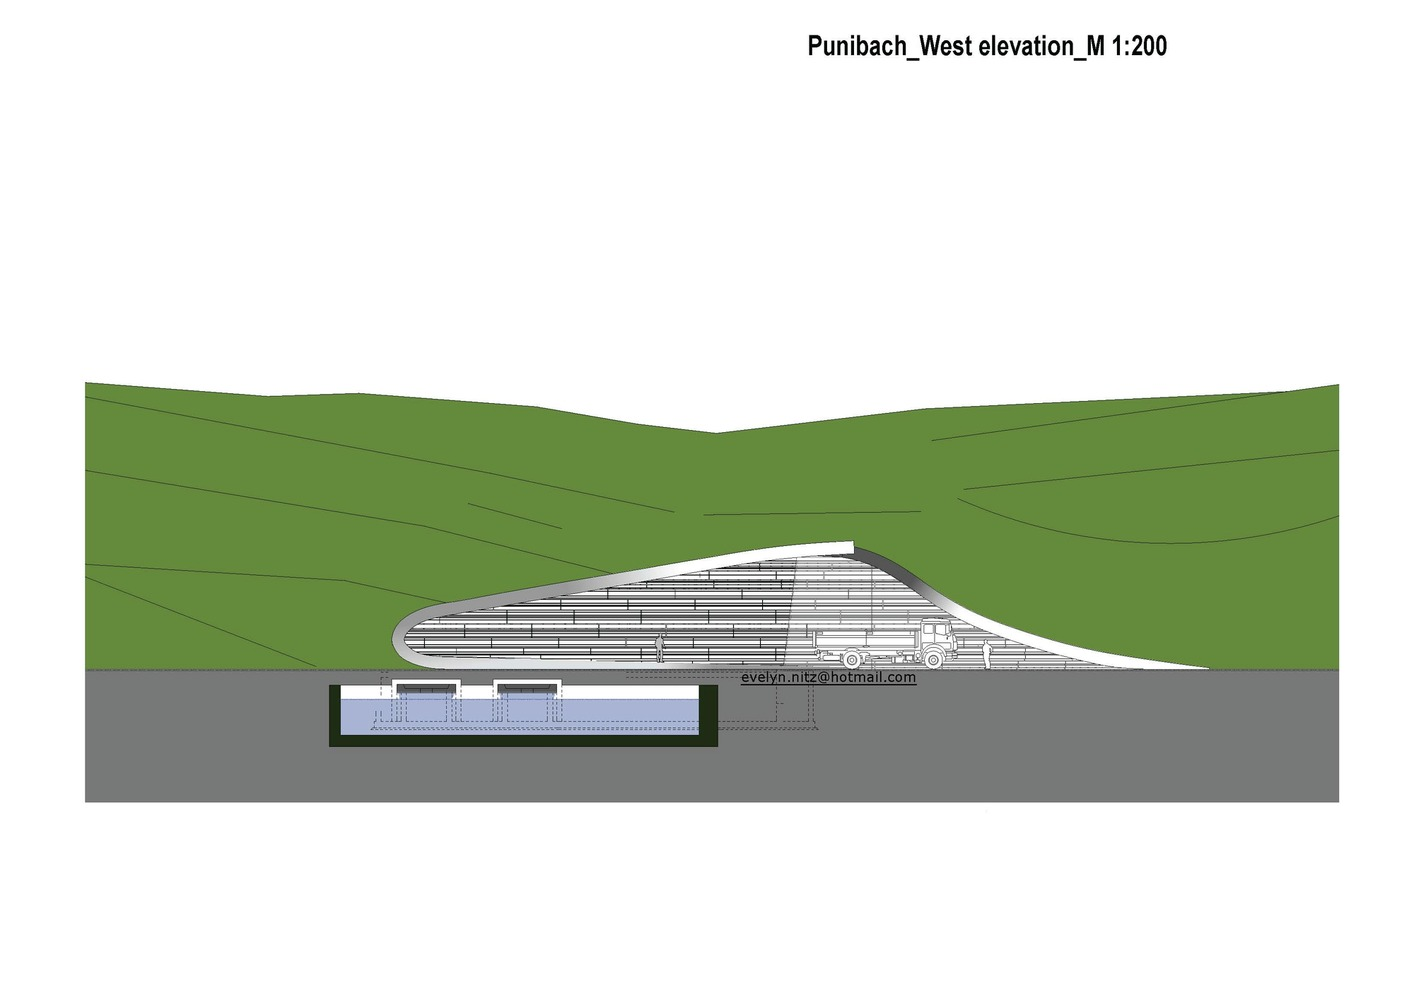 Gallery Of Hydroelectric Power Station Punibach Monovolume Diagram Architecture Designelevation 01